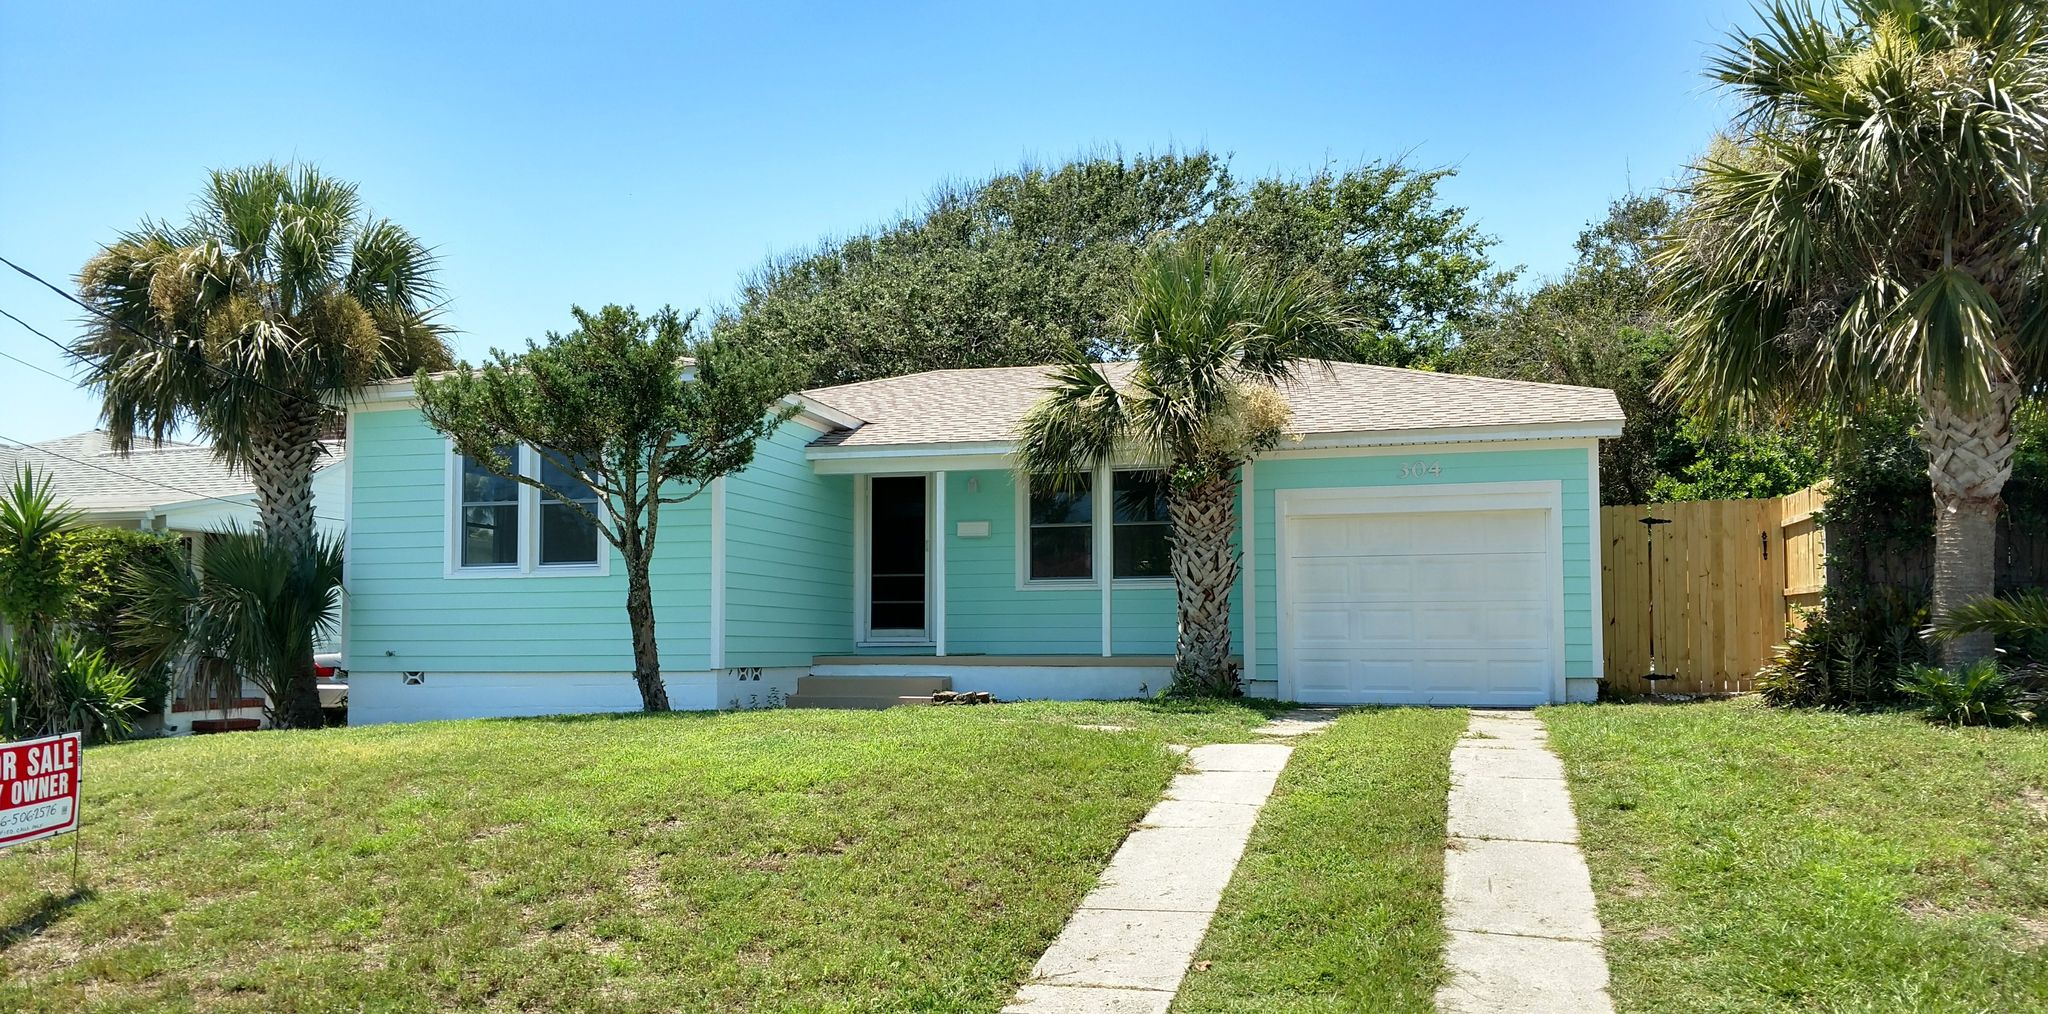 condo daytona condos wyse team fl for beach the cottages fern sea rent shores cottage